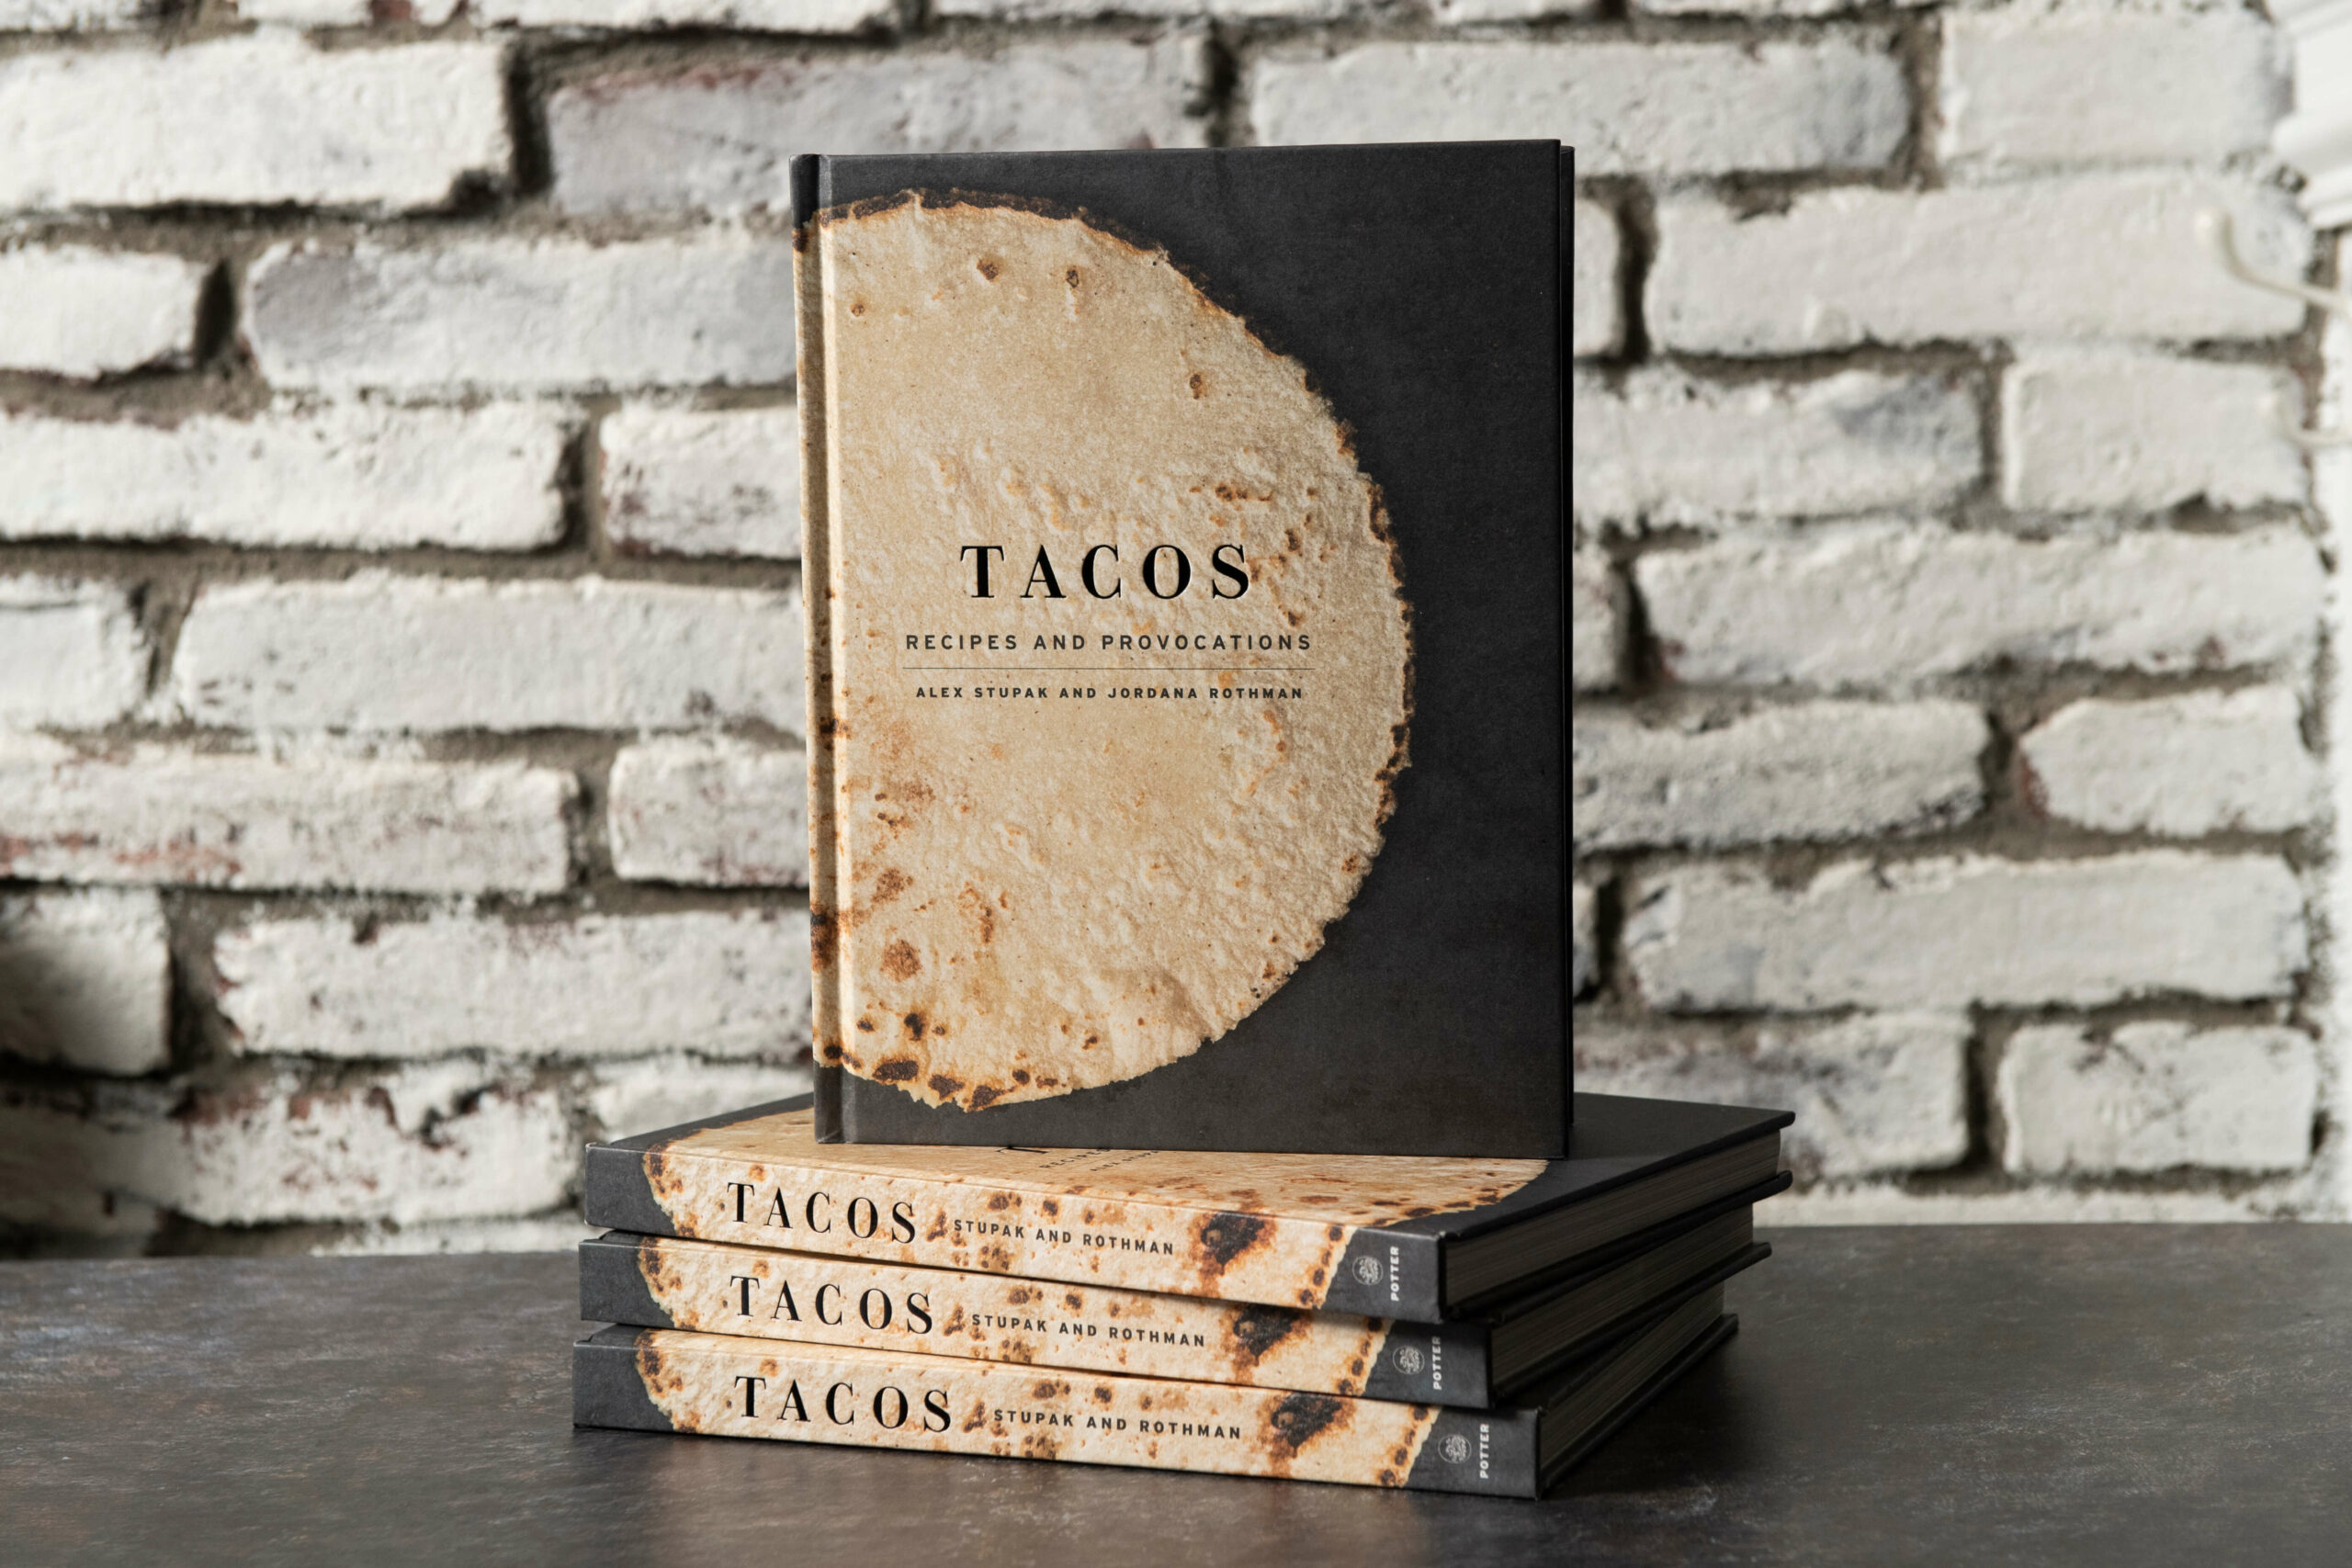 Purchase The Cookbook